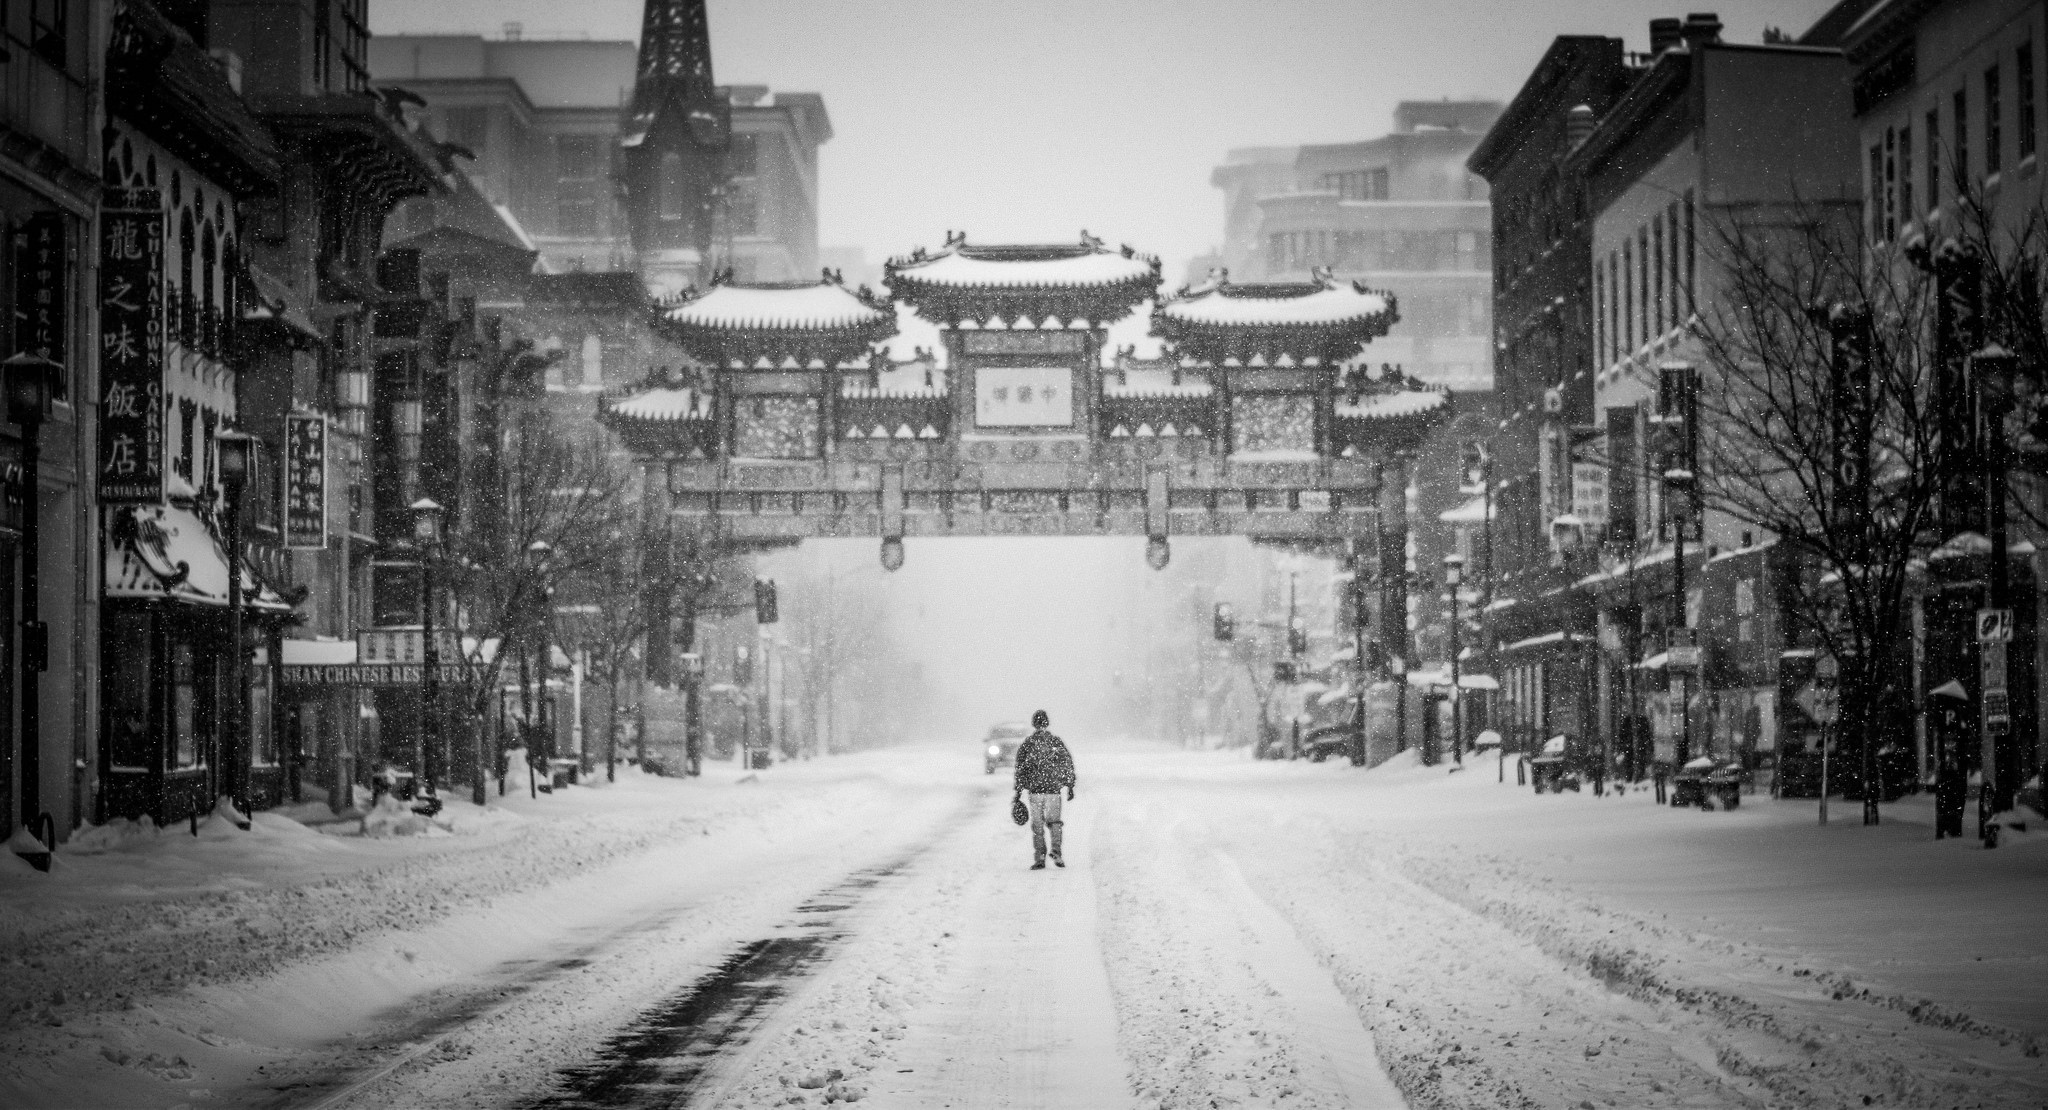 2048x1110 Free Images : person, cold, black and white, architecture, road, street,  car, building, alley, city, cityscape, asian, store, weather, lane, season,  flake, ...